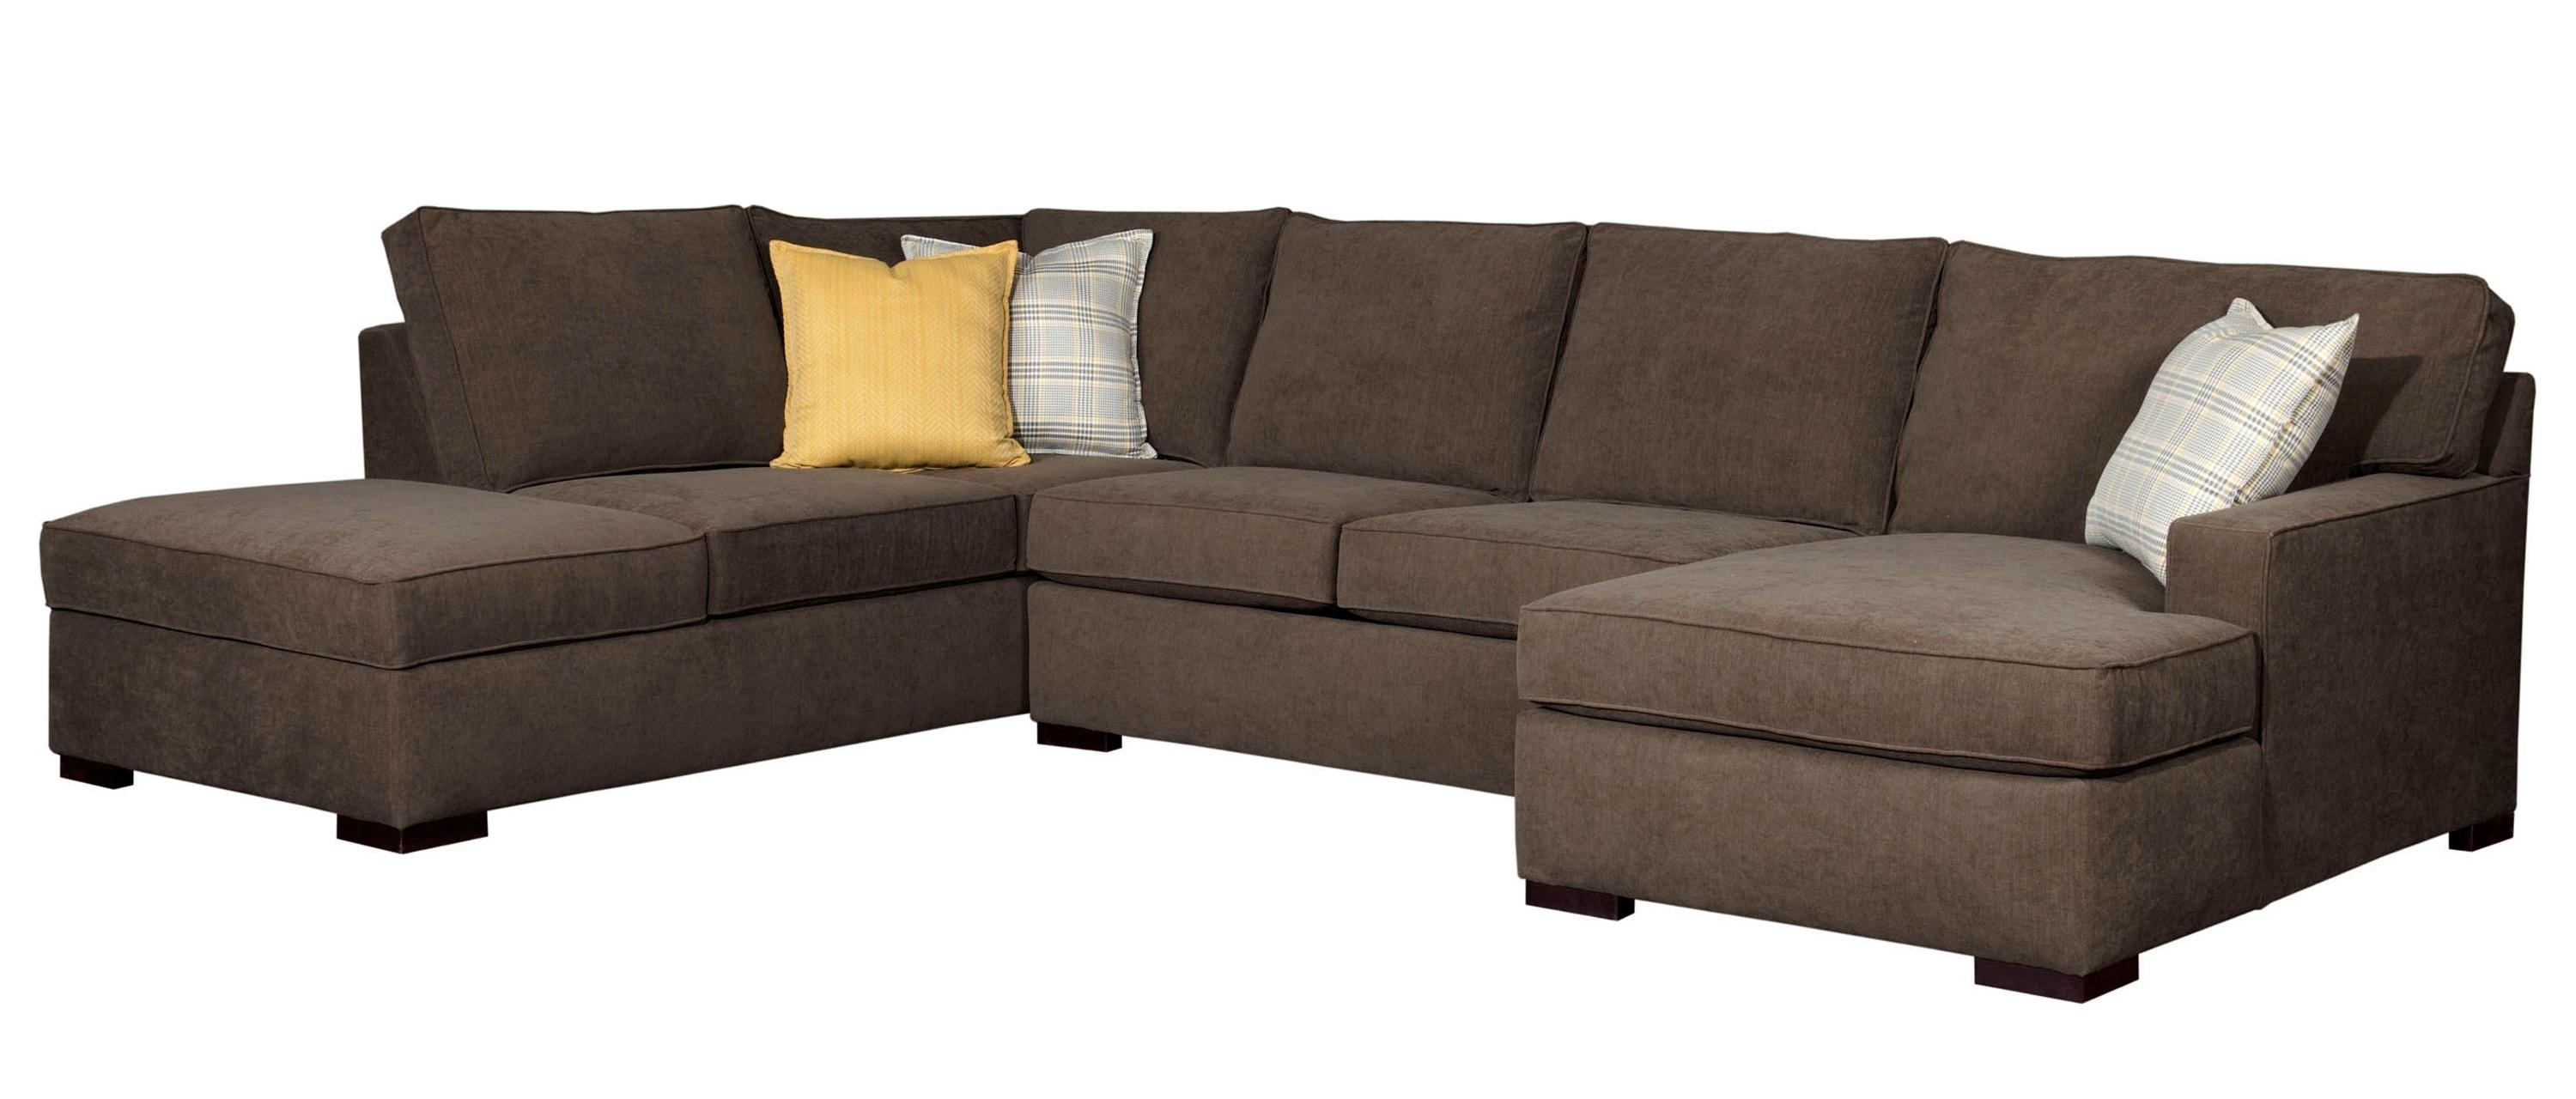 Broyhill Sectional Sofas | Freedom To for Sectional Sofas At Broyhill (Image 10 of 15)